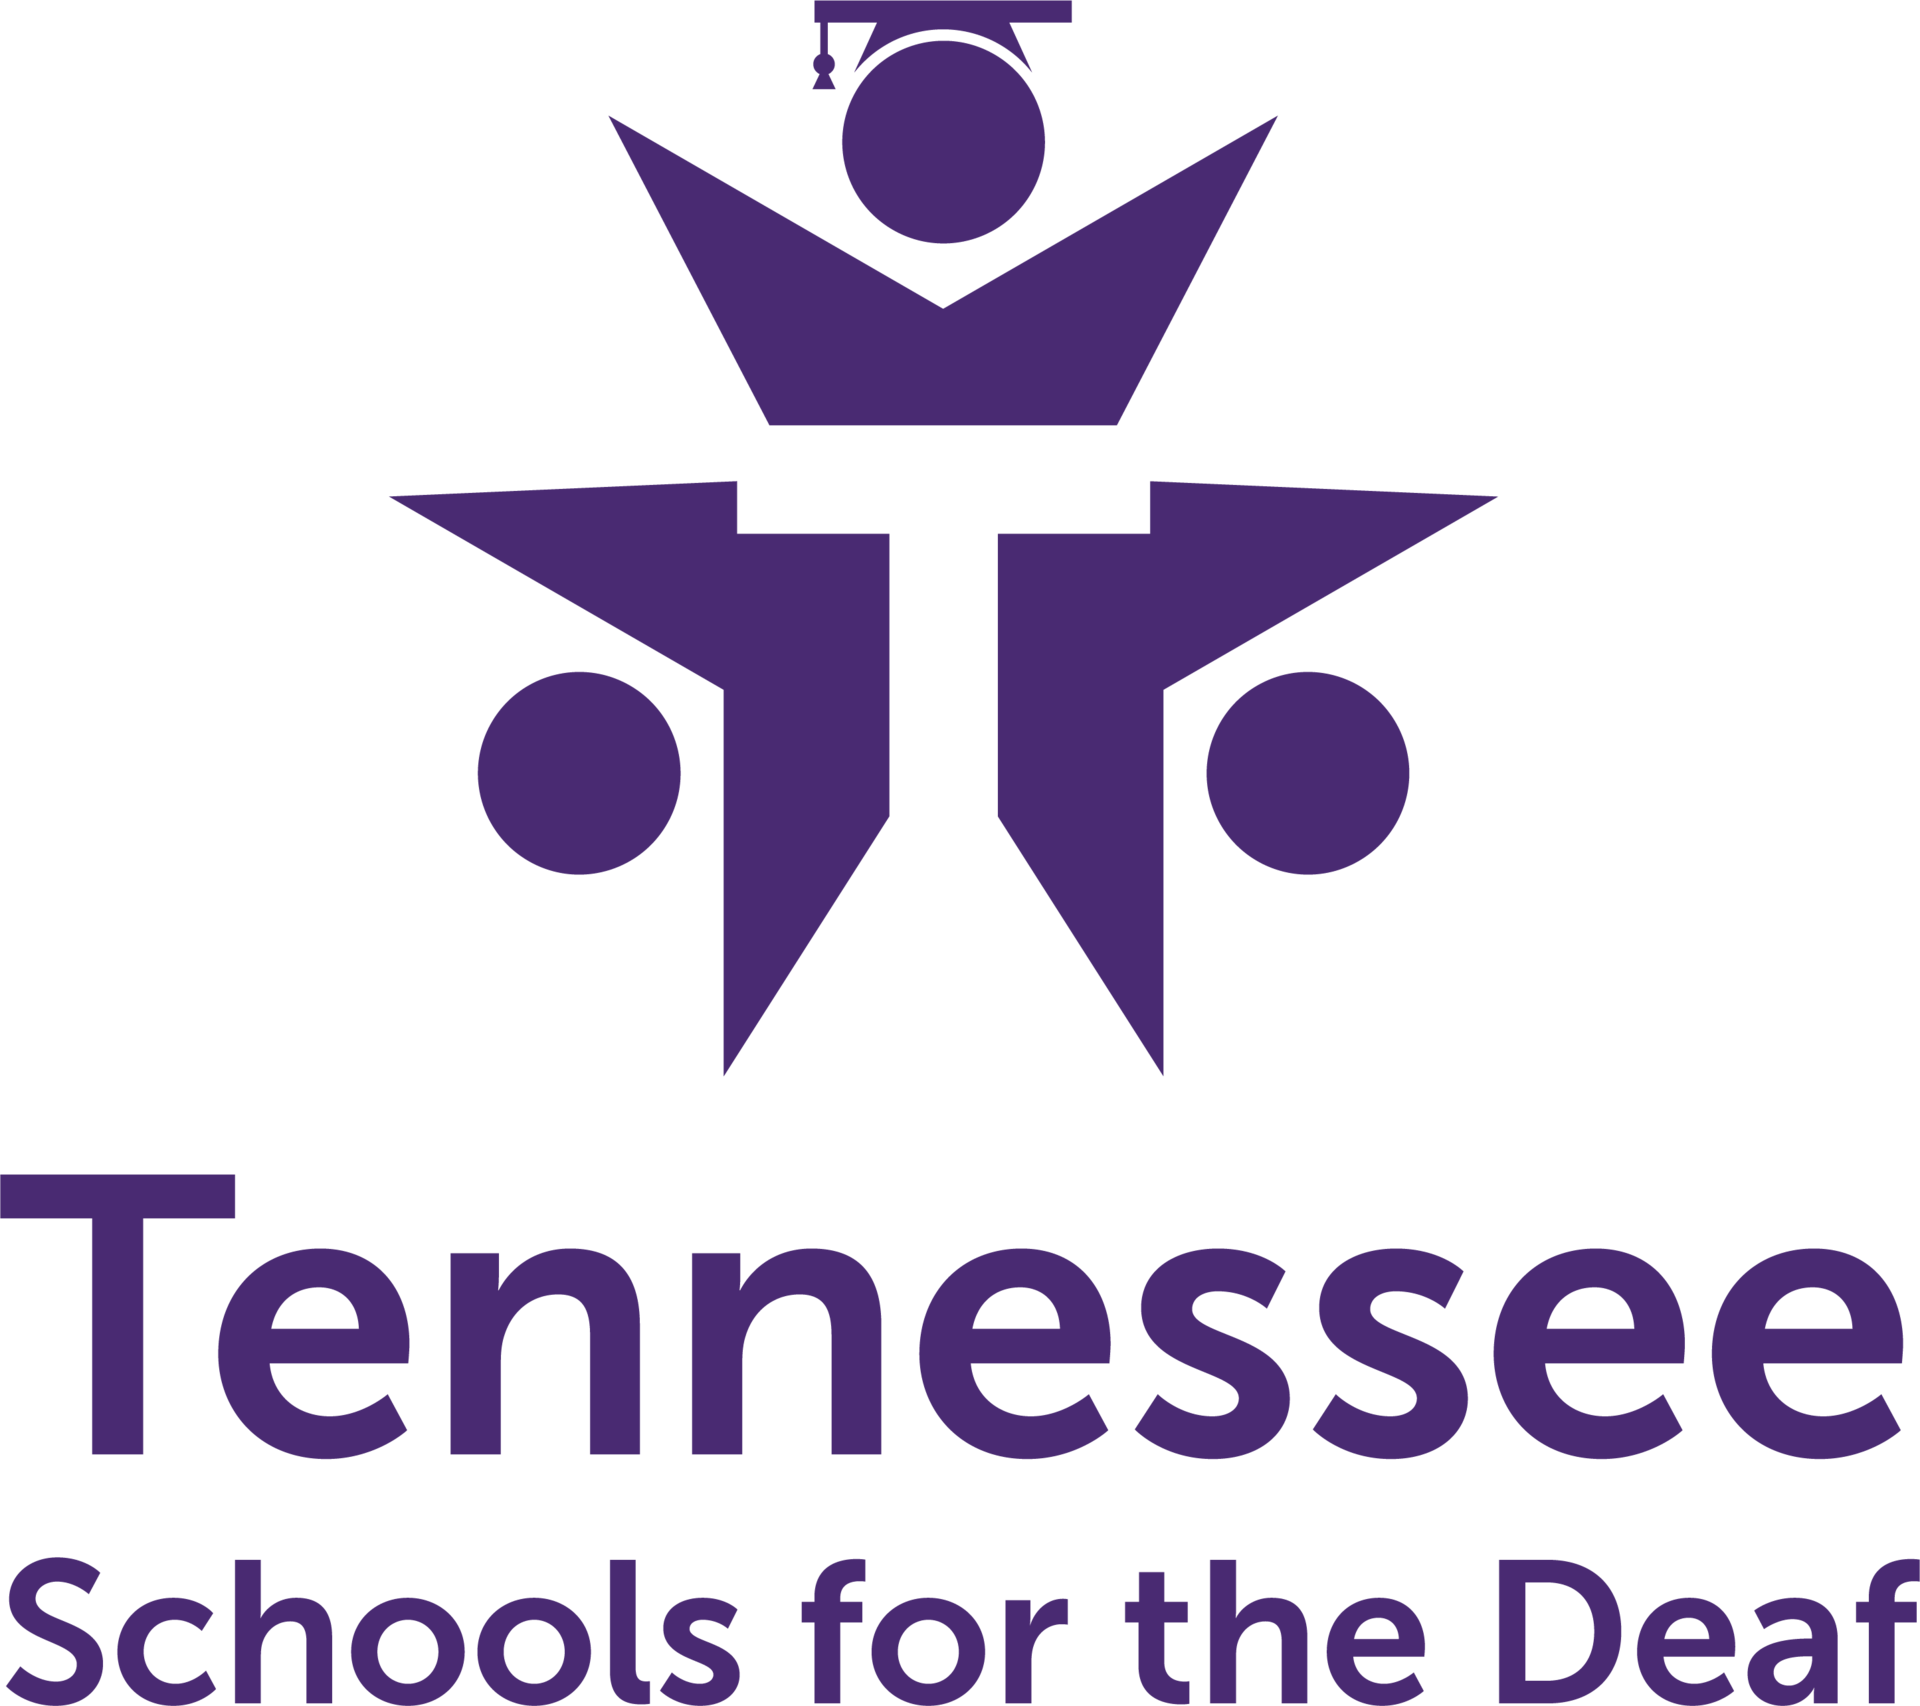 Tennessee Schools for the Deaf Partners with Innivee Strategies, Inc. to Lead Superintendent Search